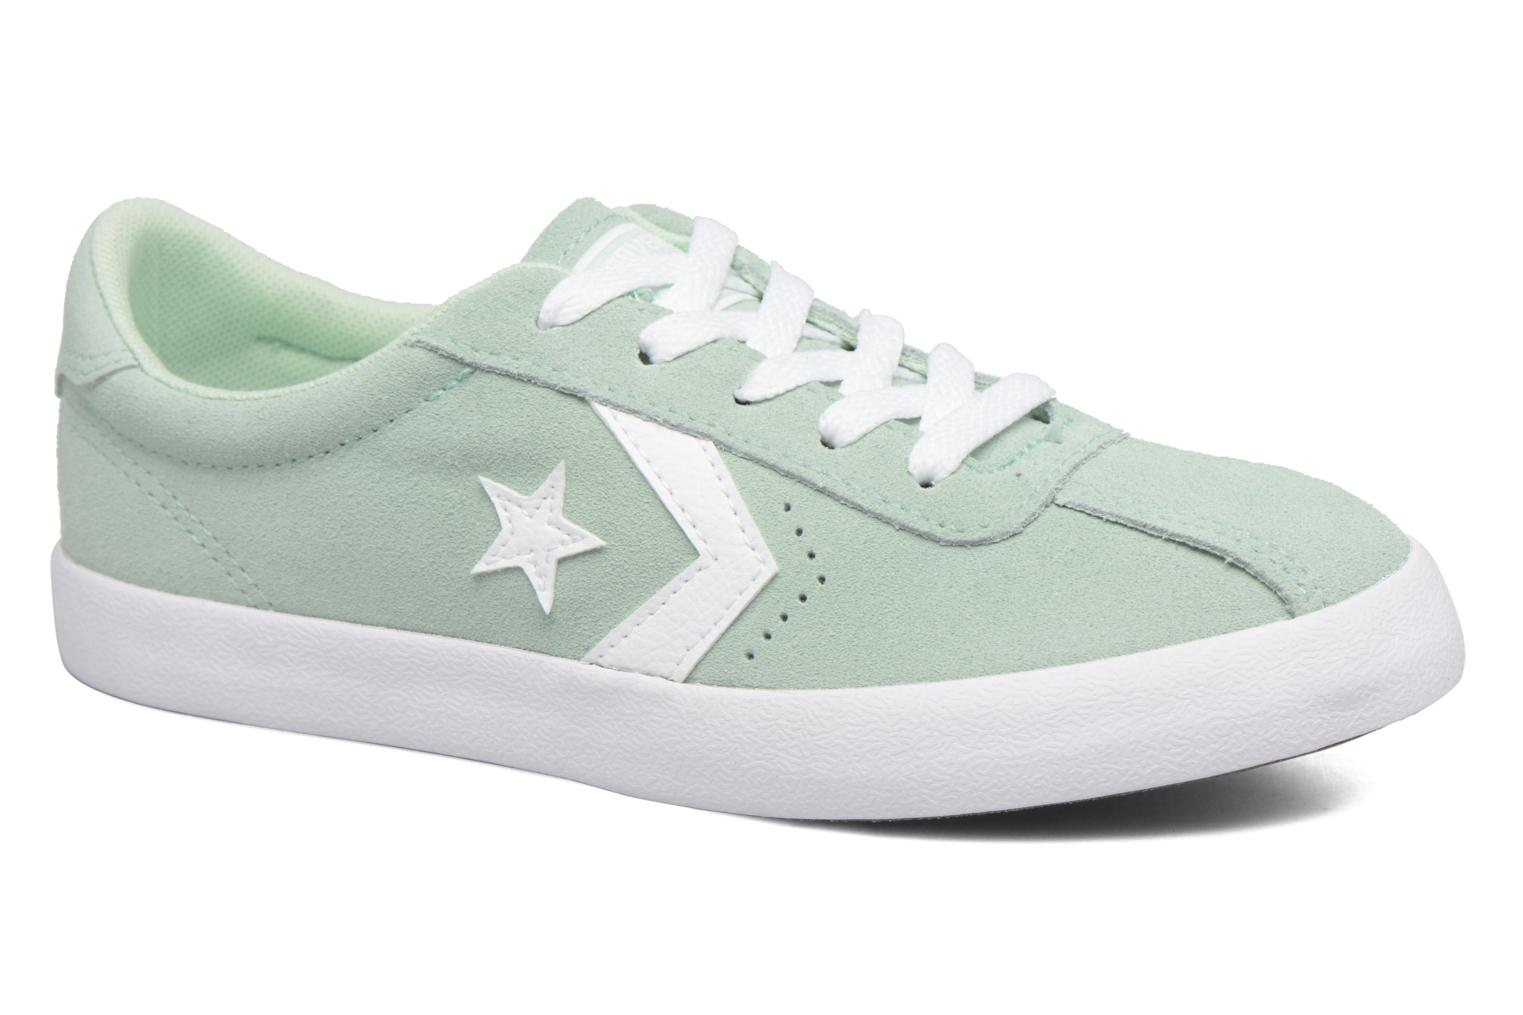 Breakpoint Suede Ox Mint Foam/Mint Foam/White